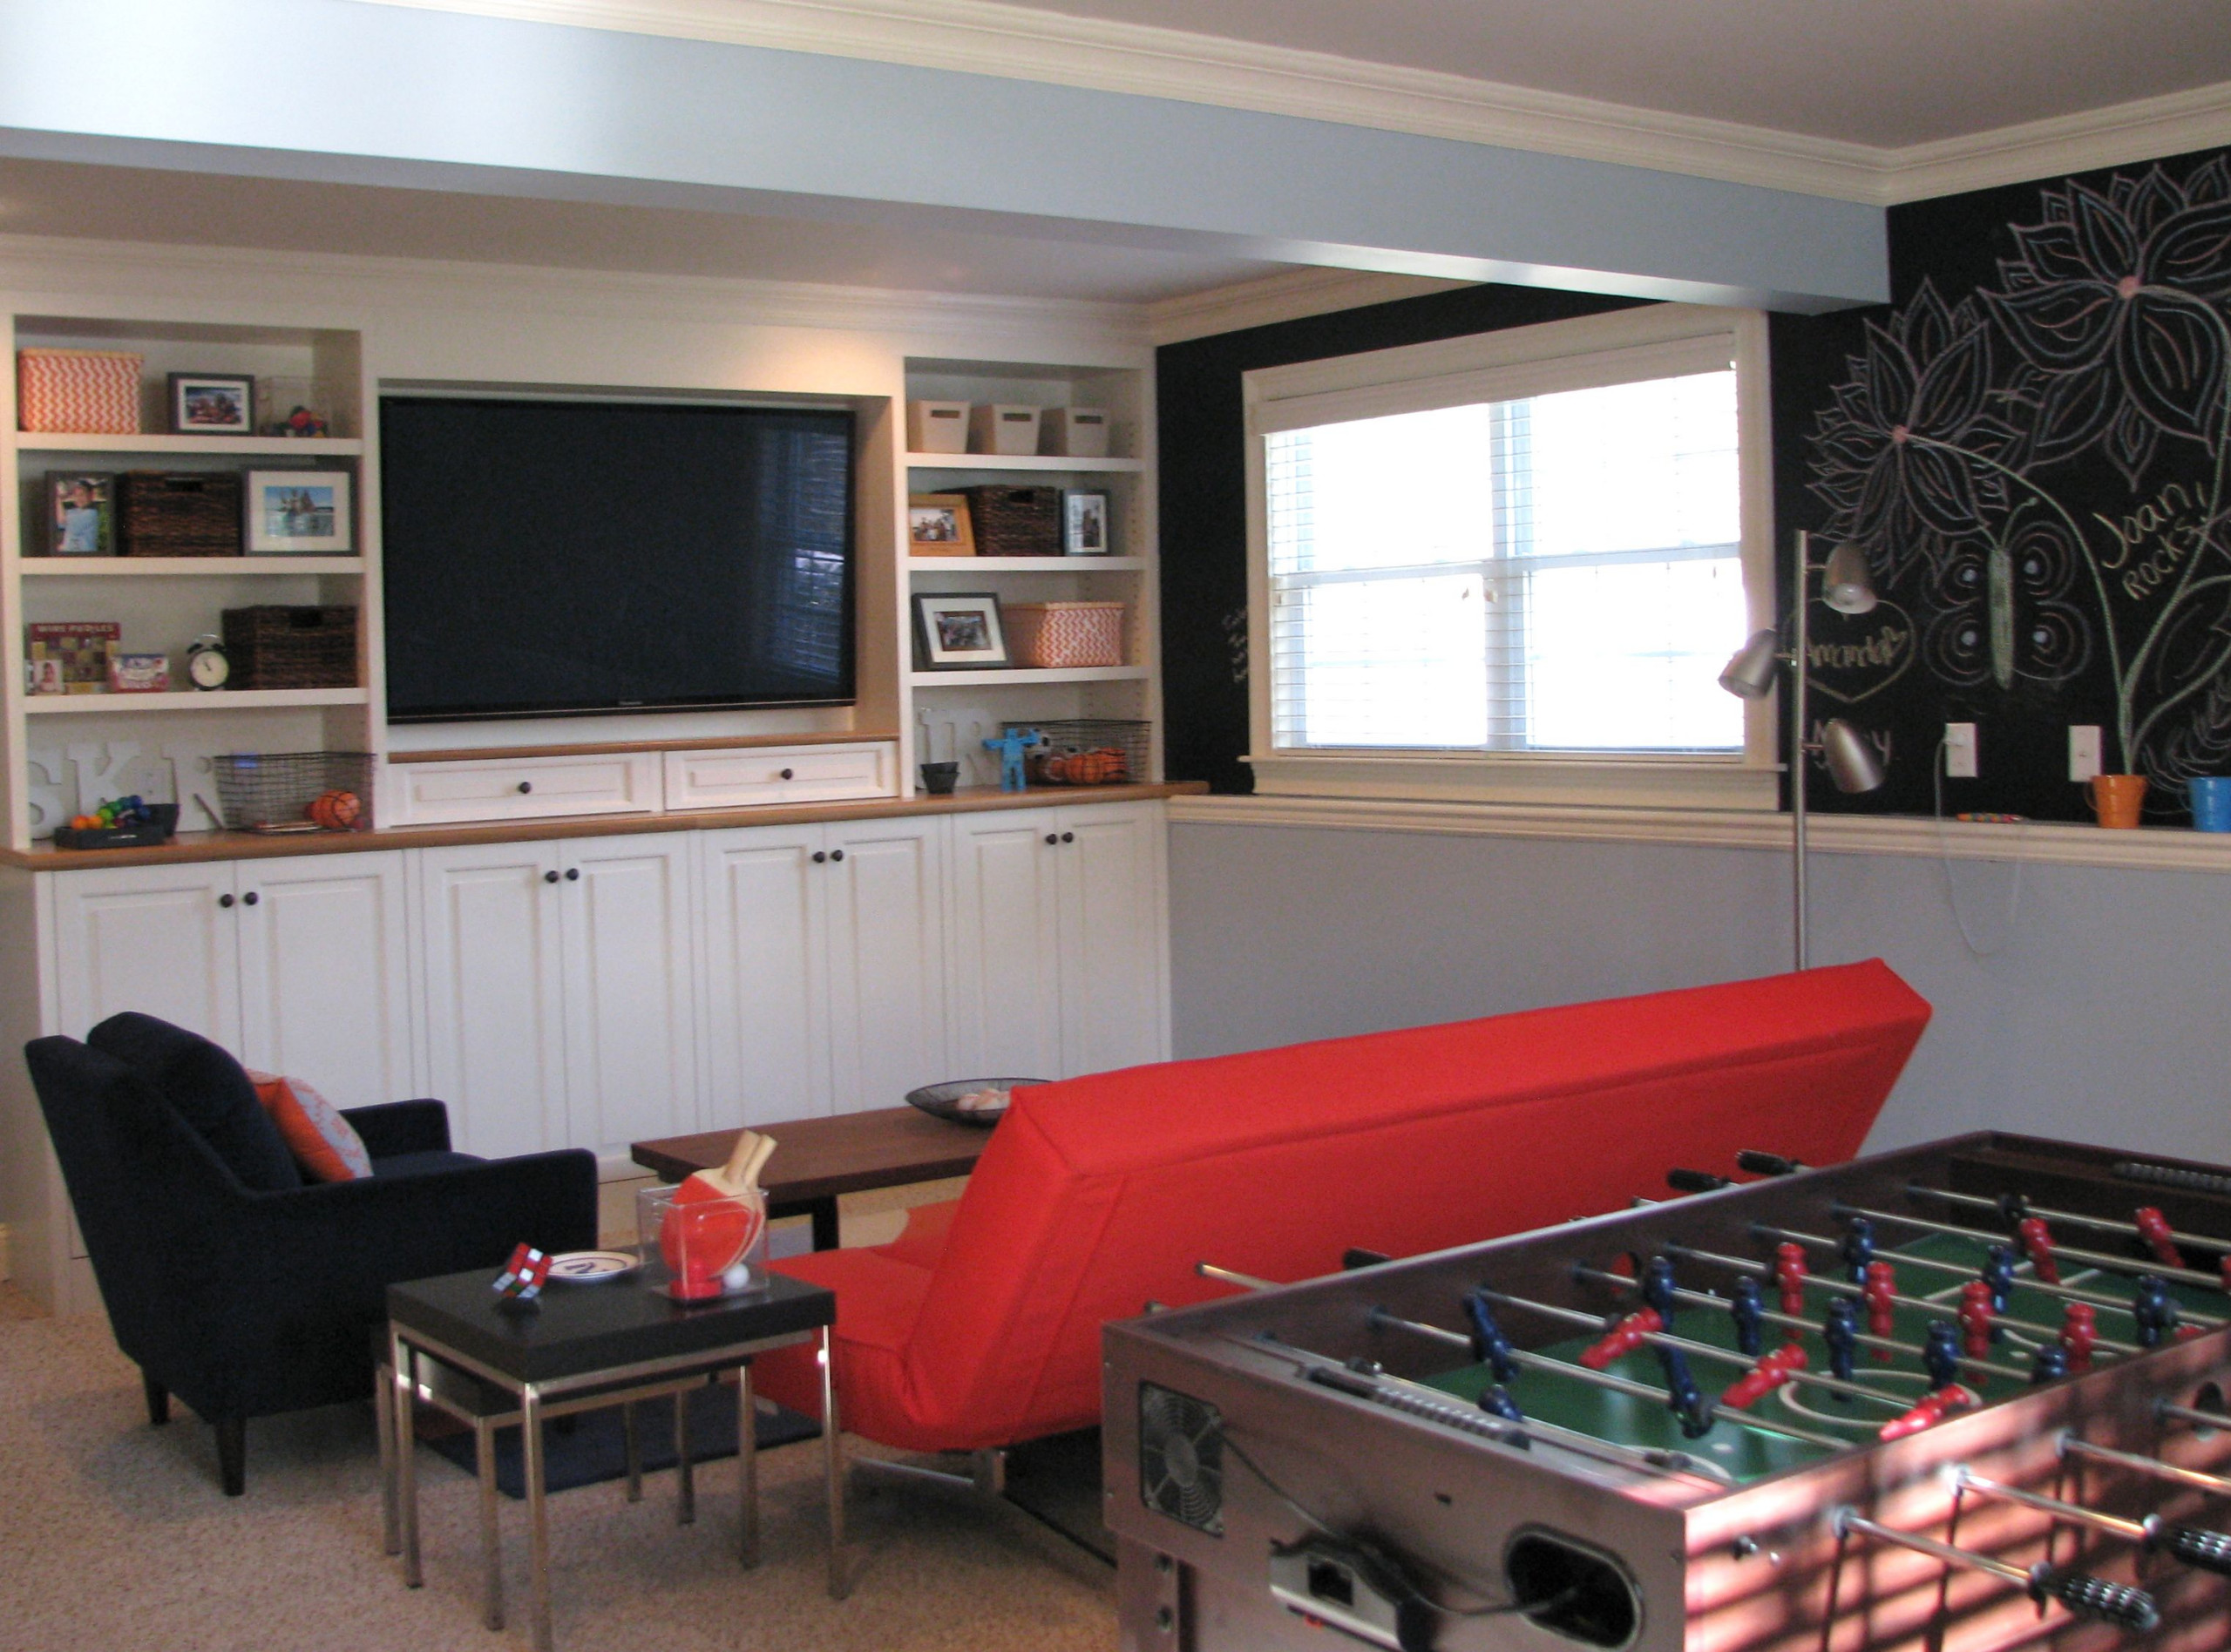 50 Most Popular Teen Game Room Ideas For 2021 Houzz